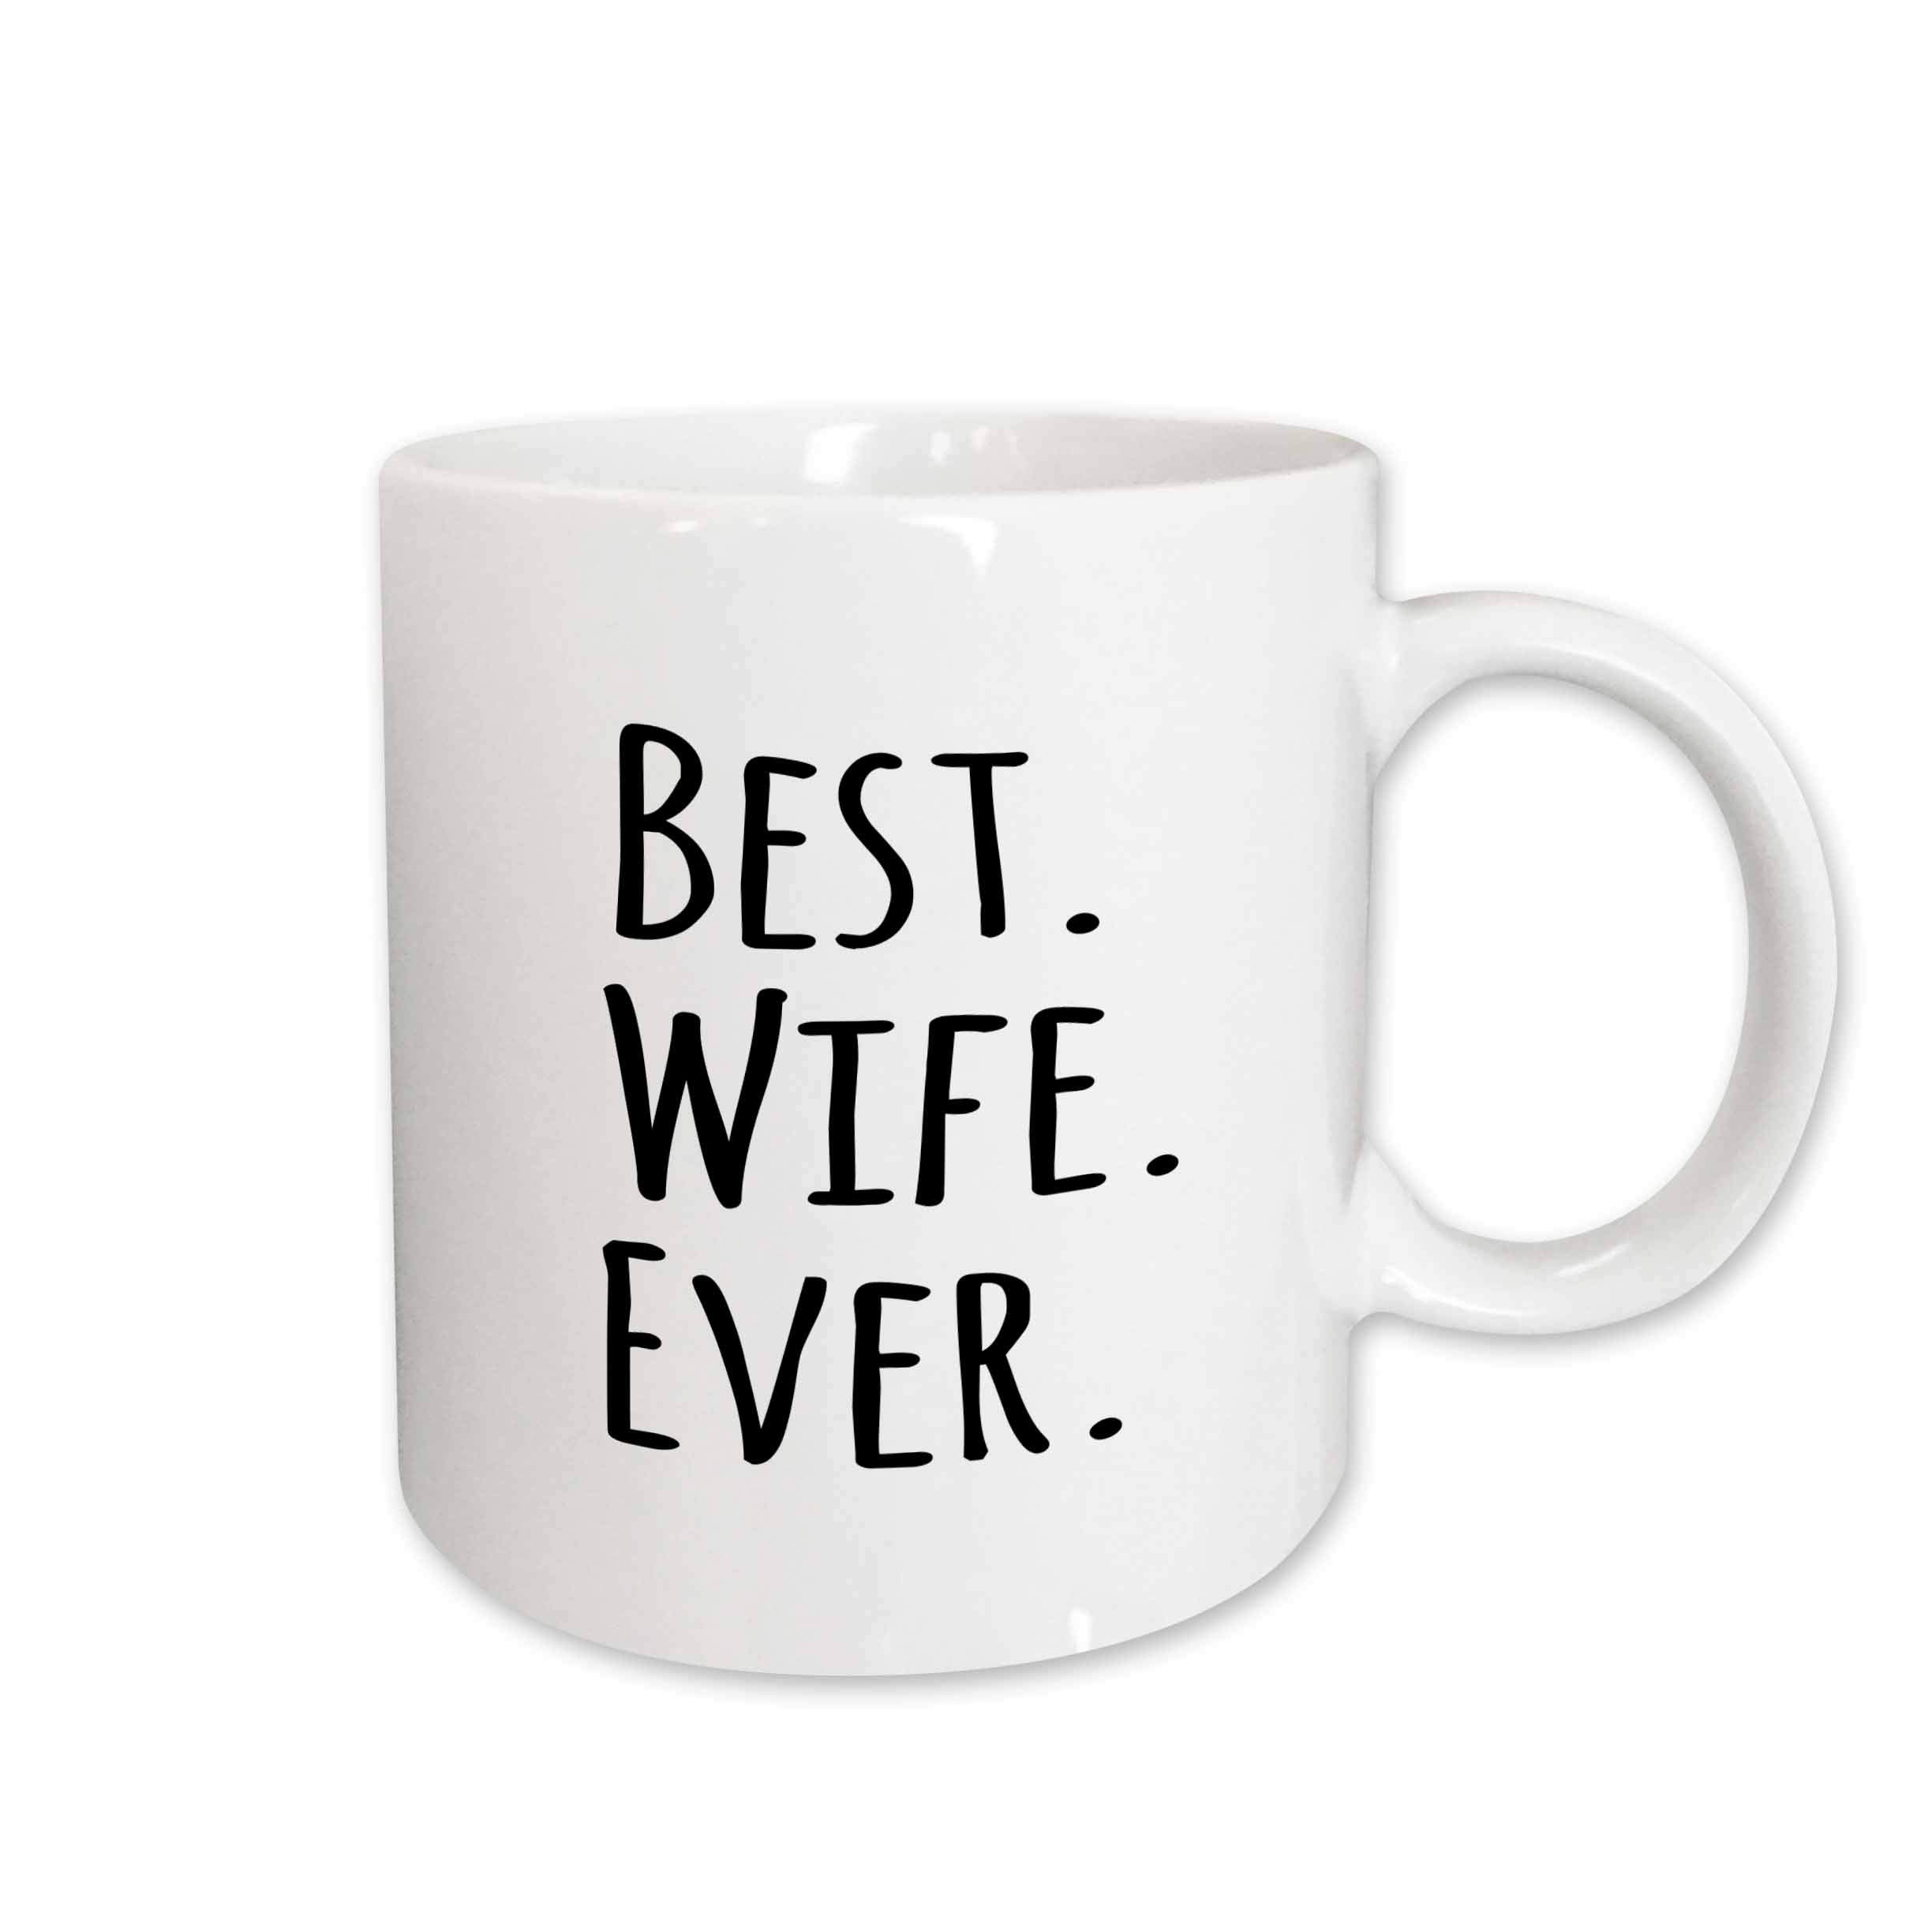 3dRose Best Wife Ever Romantic, Love Gifts for Her, Anniversary, Valentines Day, Ceramic Mug, 15-Oz